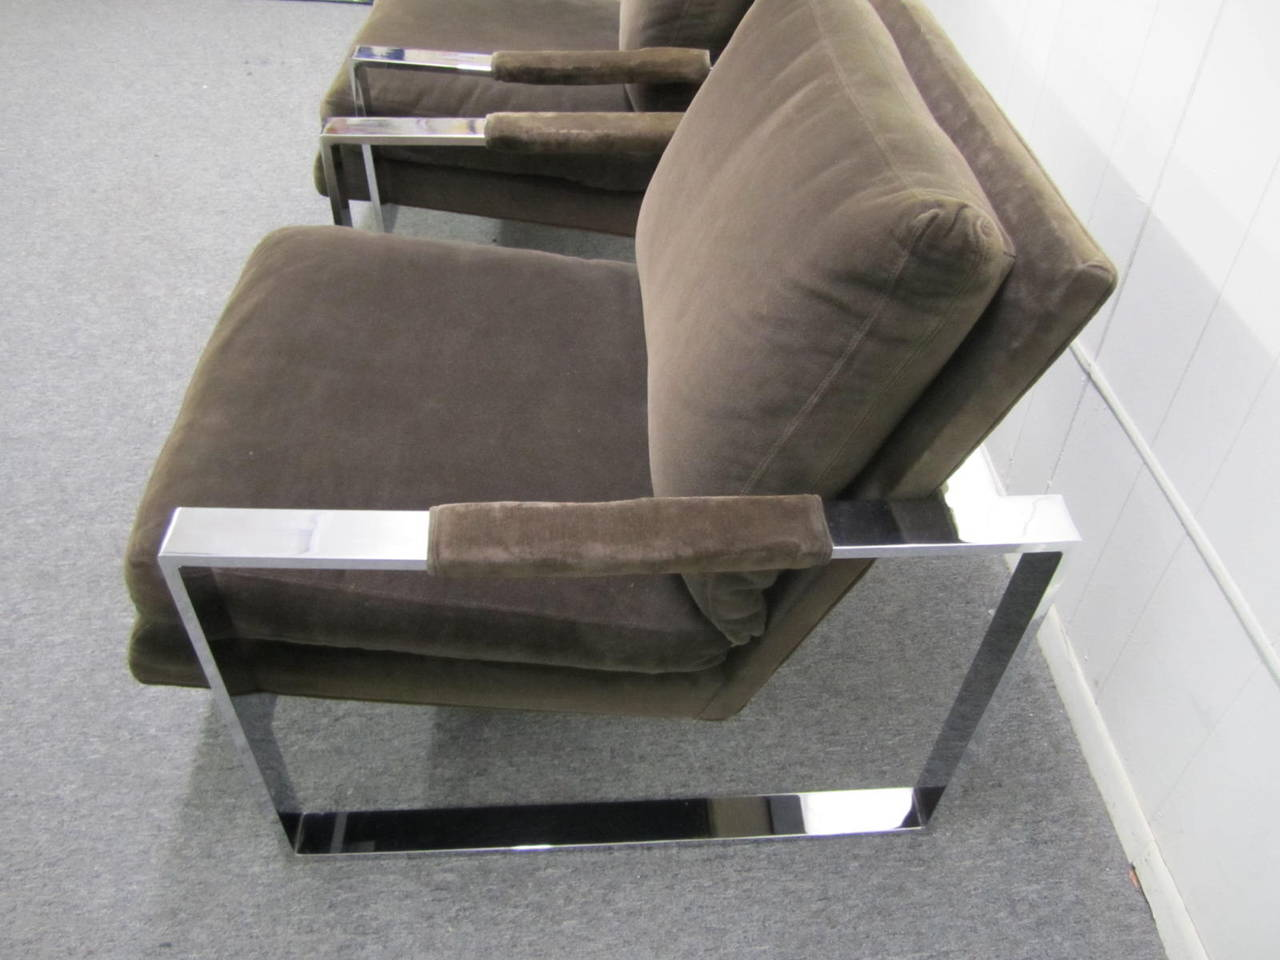 Fabulous Pair of Milo Baughman Chrome Cube Lounge Chairs, Mid-Century Modern In Good Condition For Sale In Medford, NJ